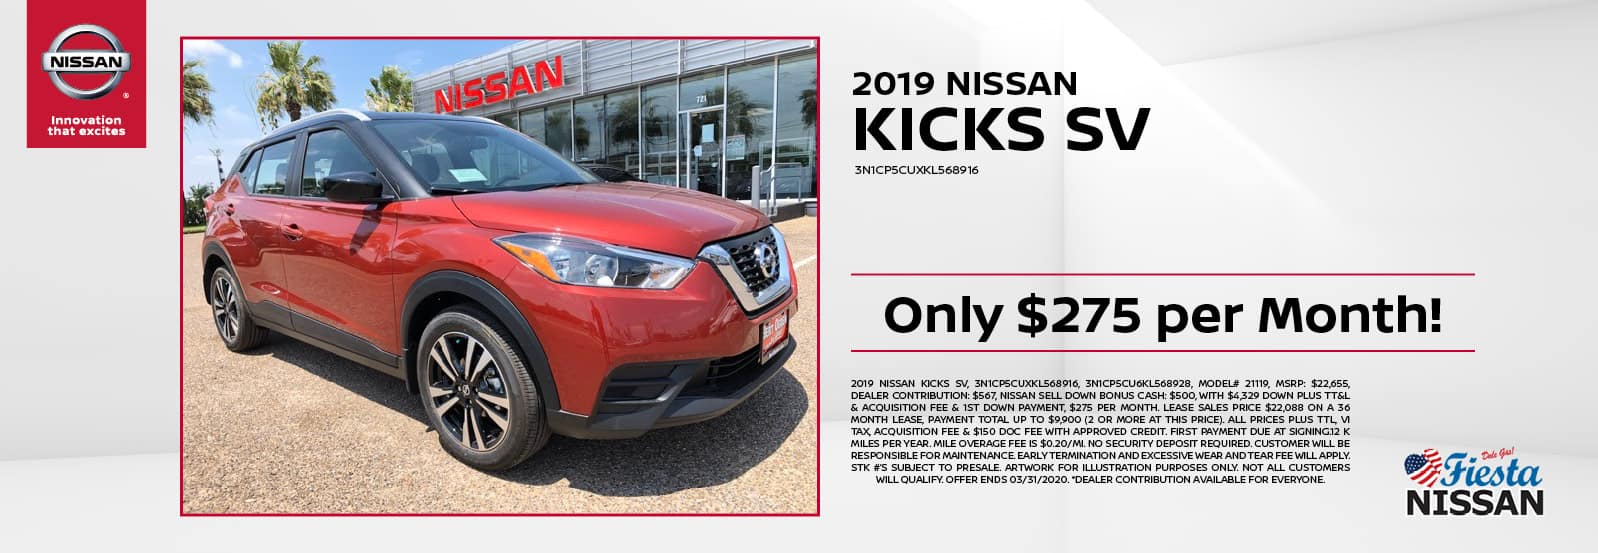 2019 Nissan Kicks SV at Fiesta Nissan in Edinburg, TX